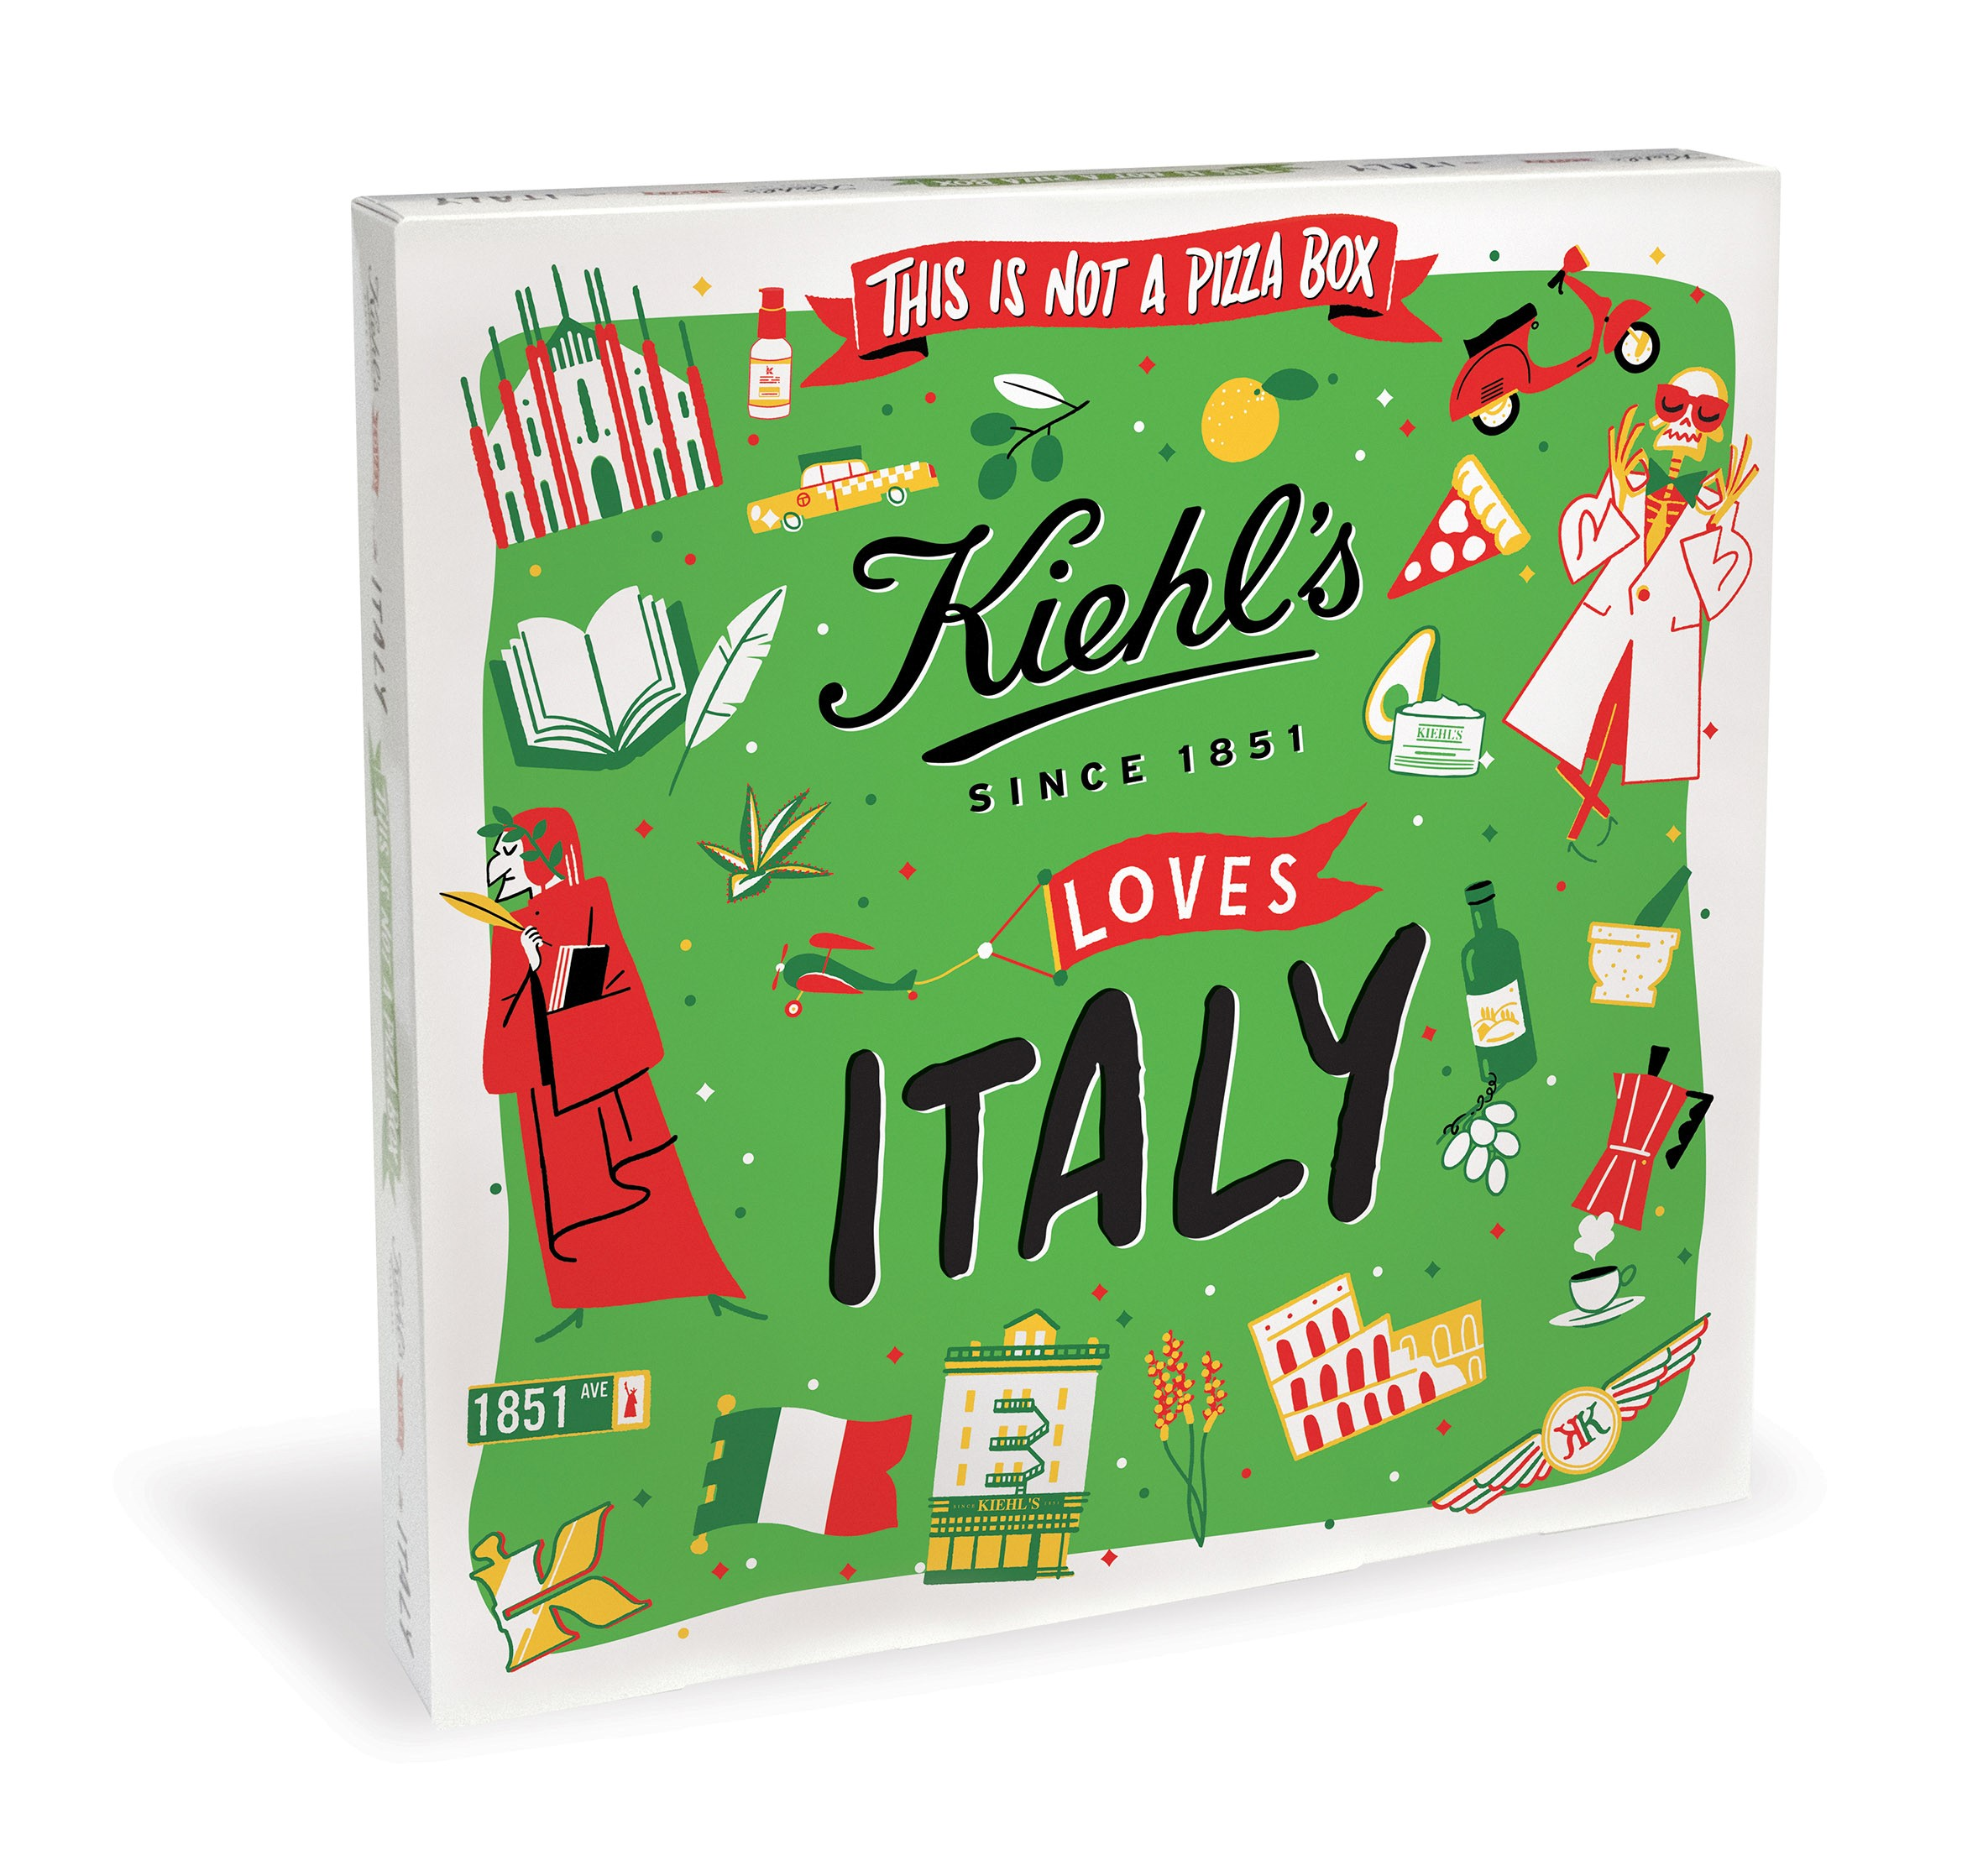 Kiehl's: a Milano primo This is not a Pizza Party